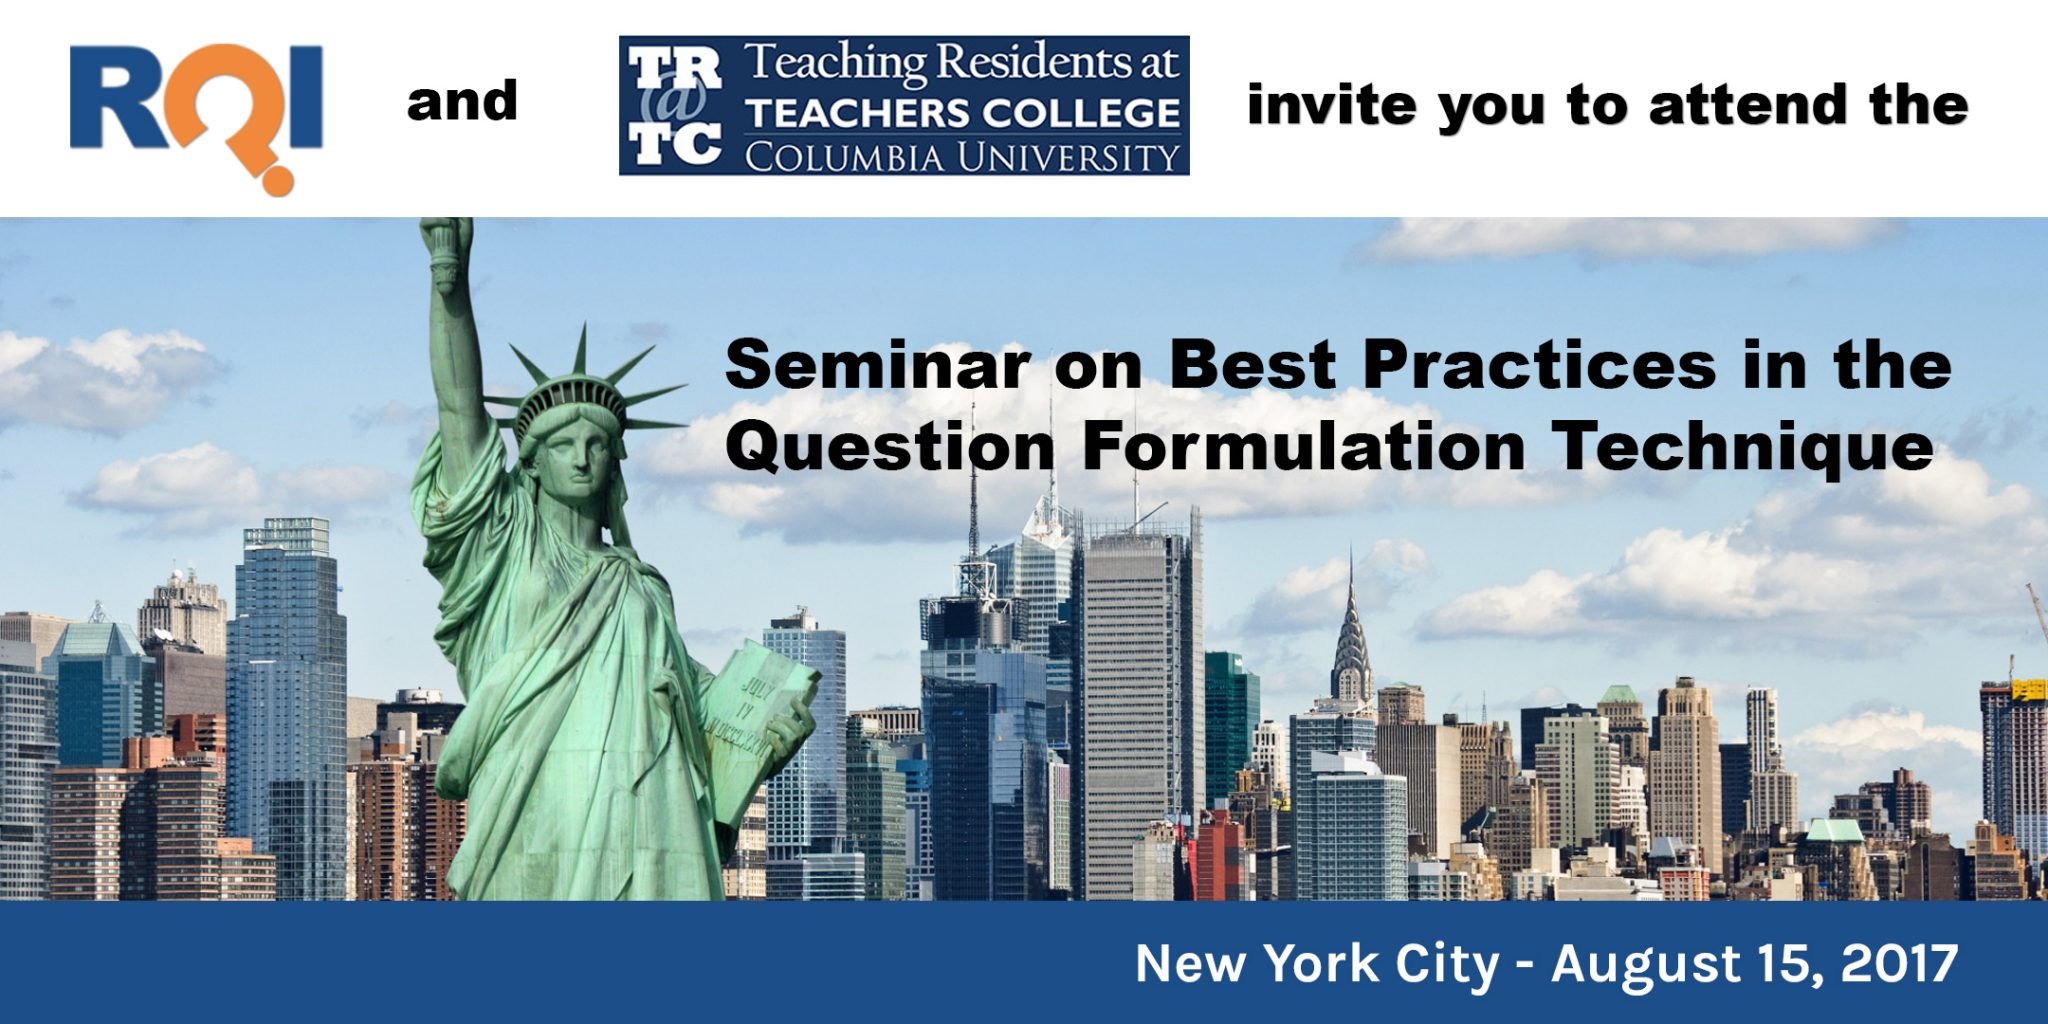 Best Practices in the Question Formulation Technique hosted